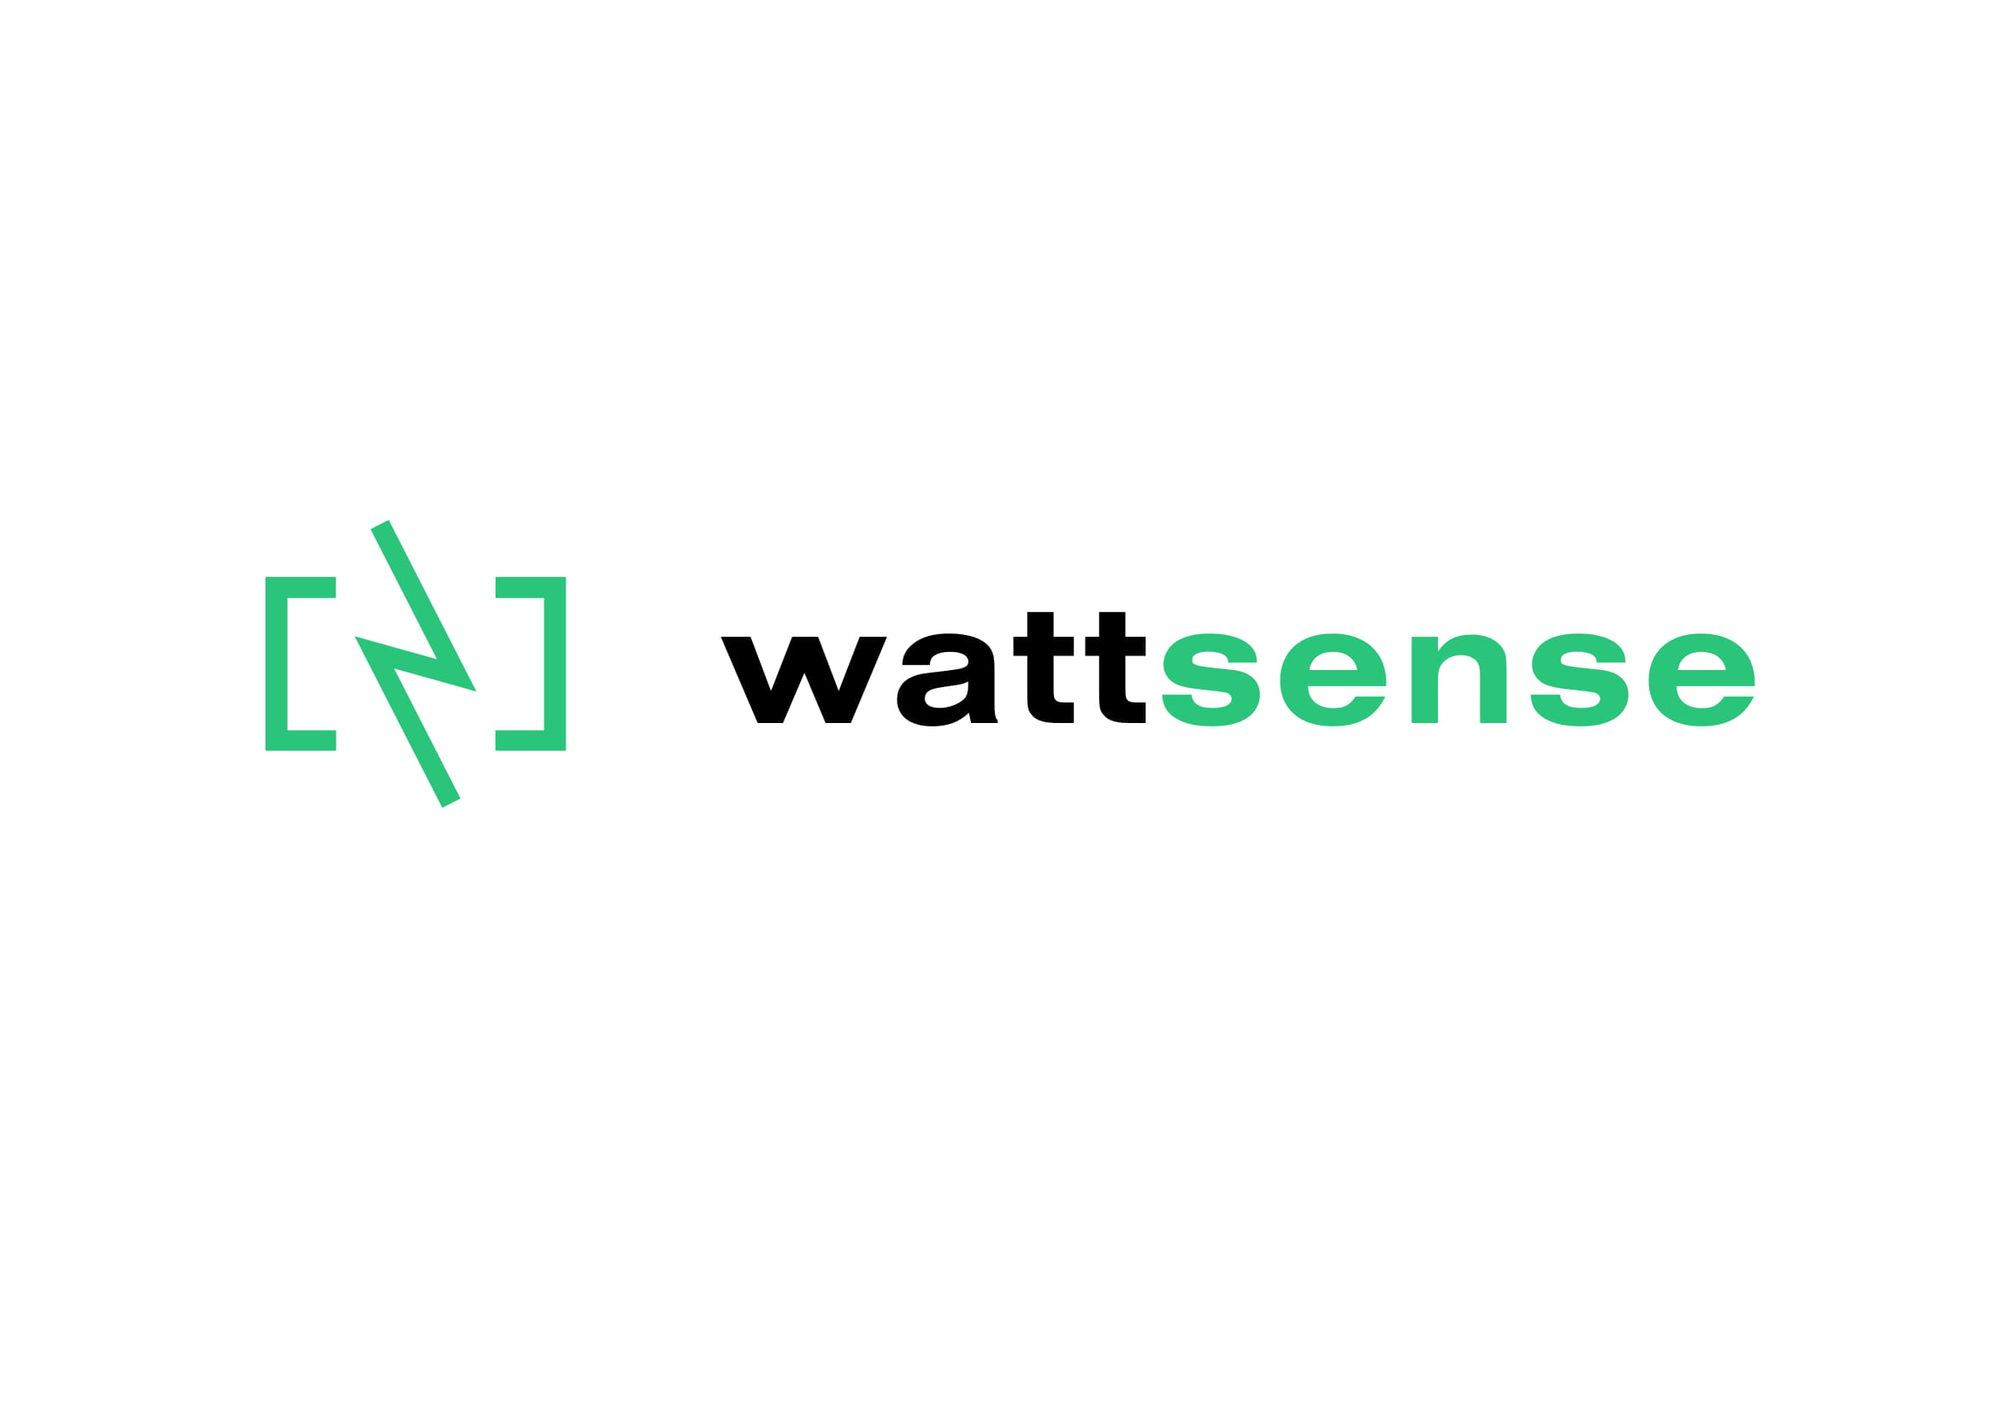 The concept behind the new visual identity and website of Wattsense